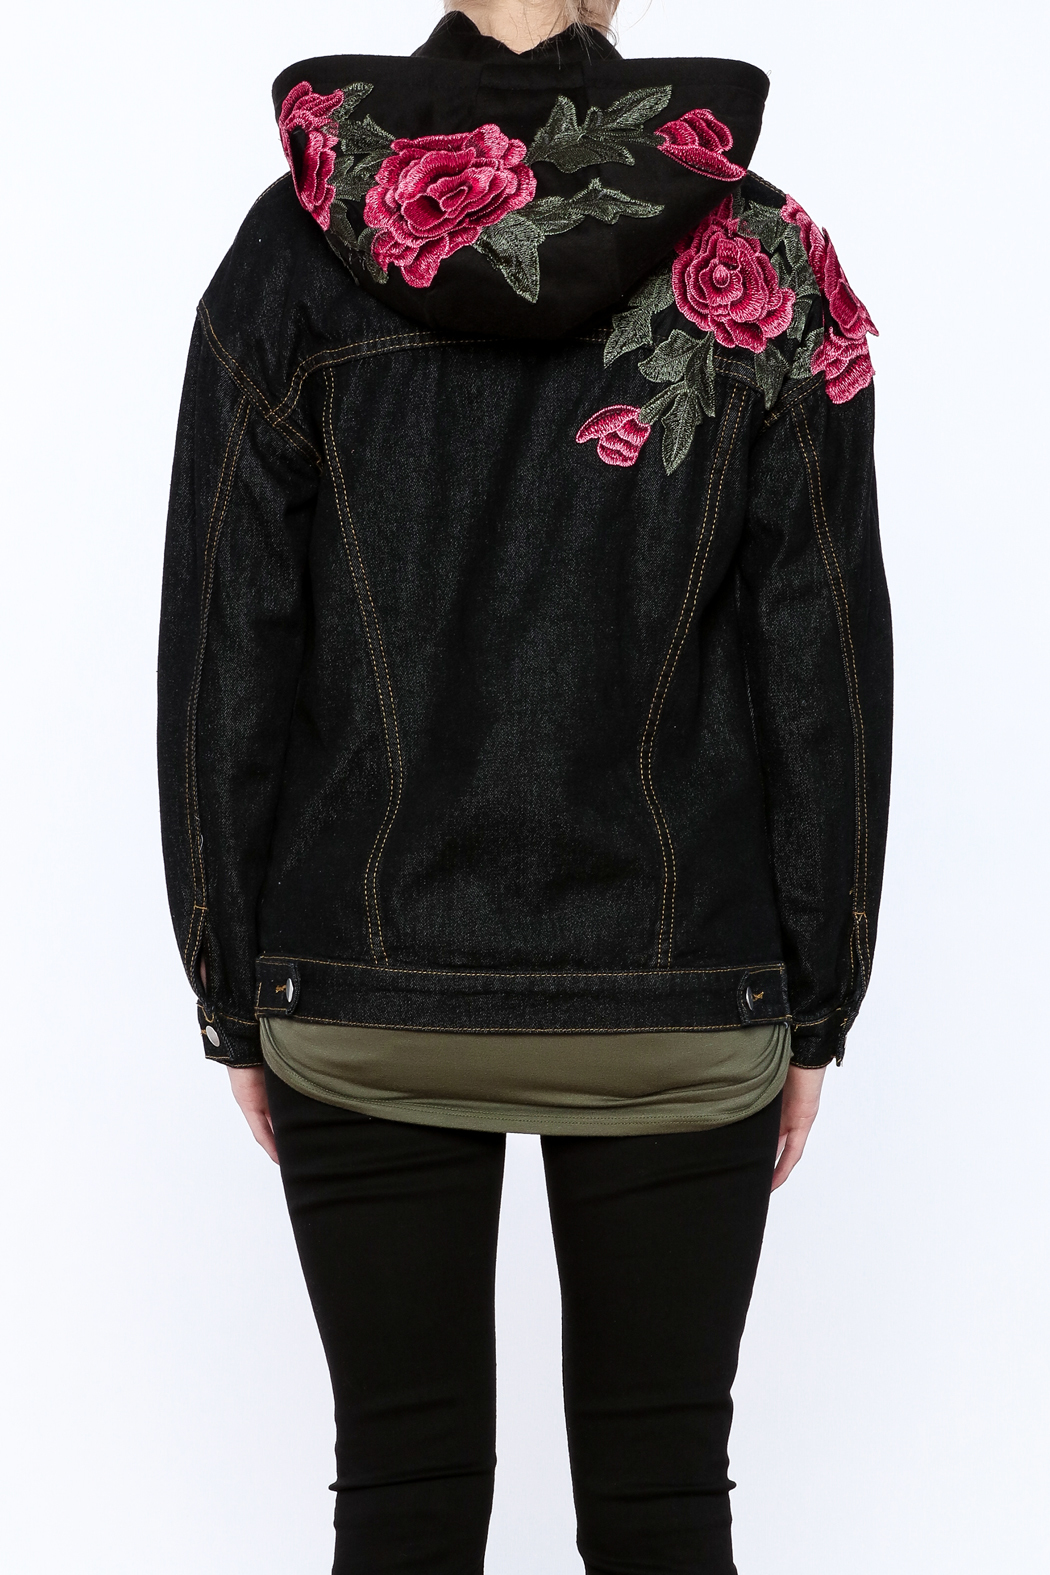 Polly Amp Esther Floral Embroidered Hooded Jacket From